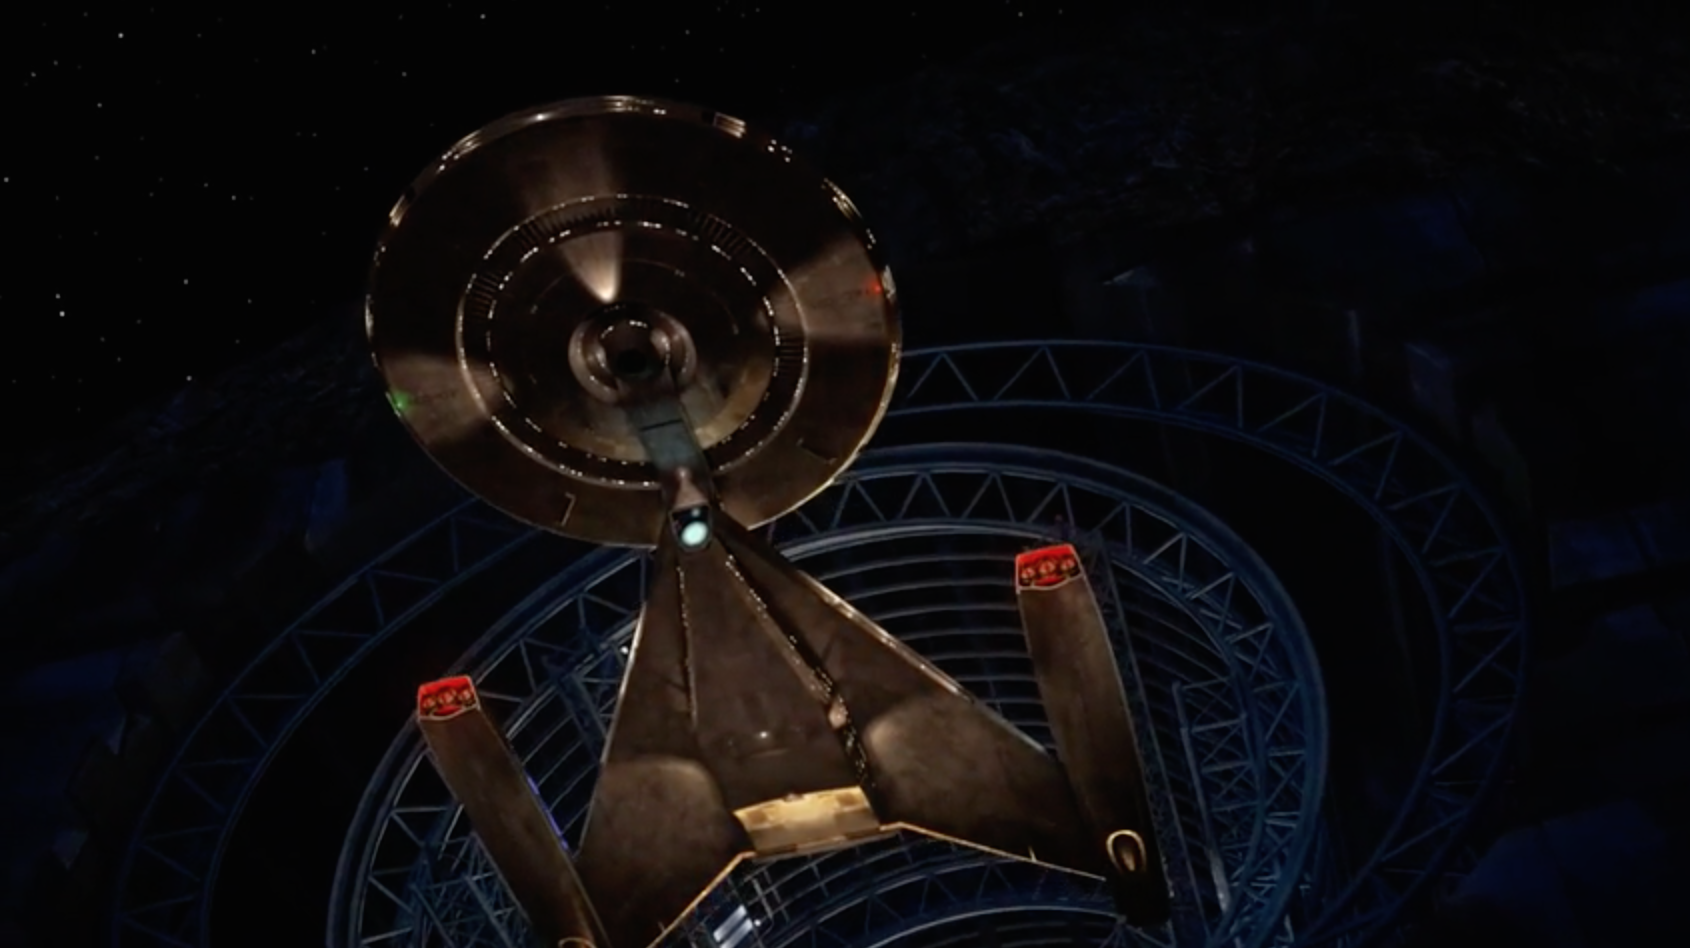 CBS Will Let You Watch New Star Trek Show Without Commercials… For $4/Month More